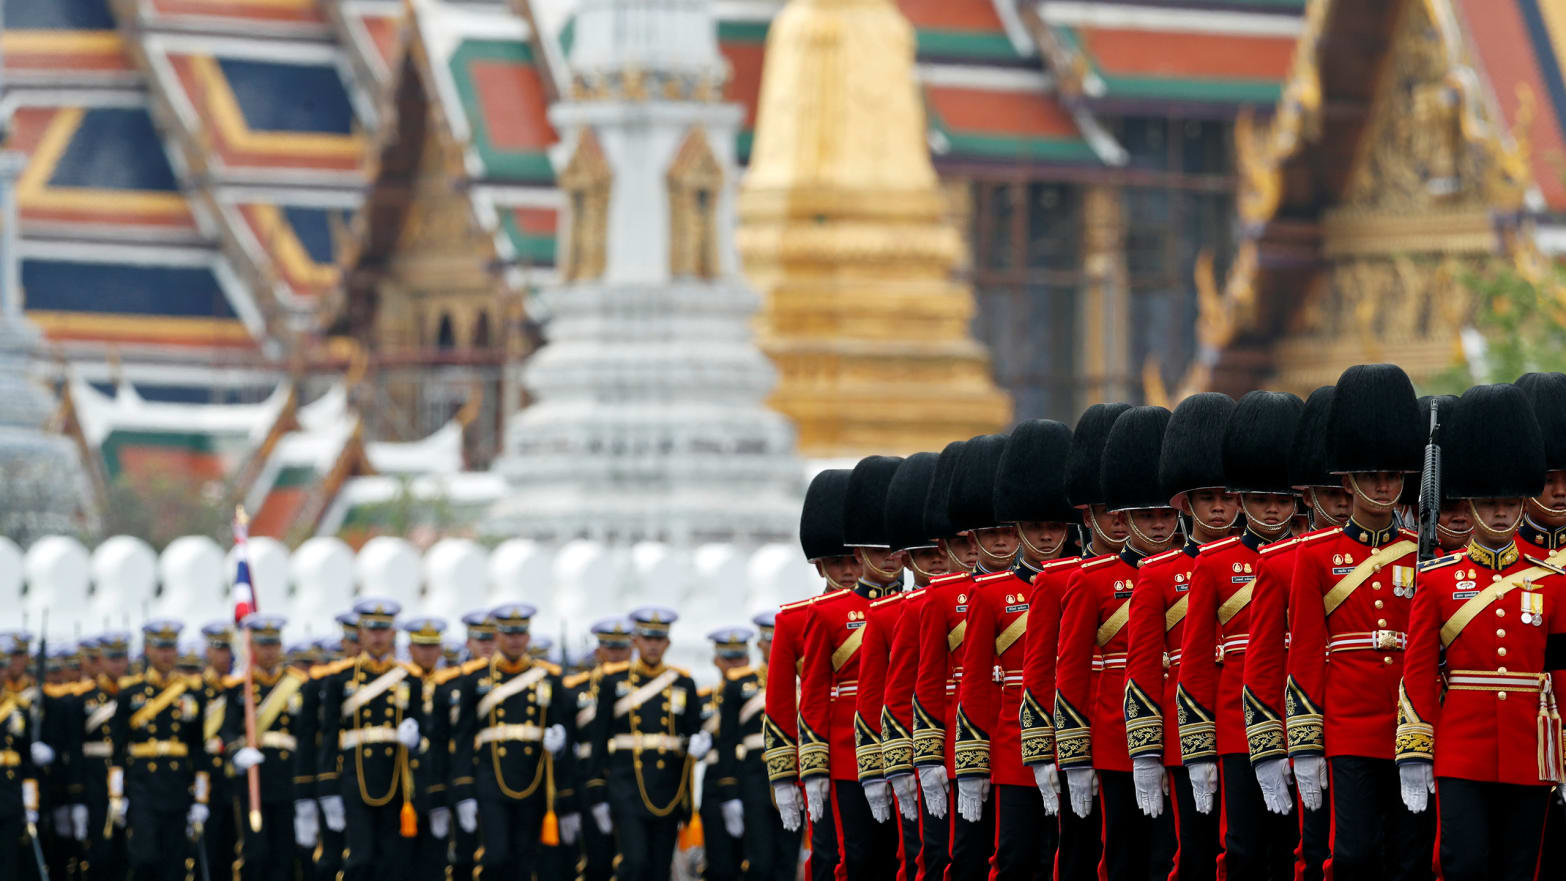 Royal Guards take part in the royal cremation procession of late King Bhumibol Adulyadej in front of the the Grand Palace in Bangkok, Thailand, October 26, 2017.